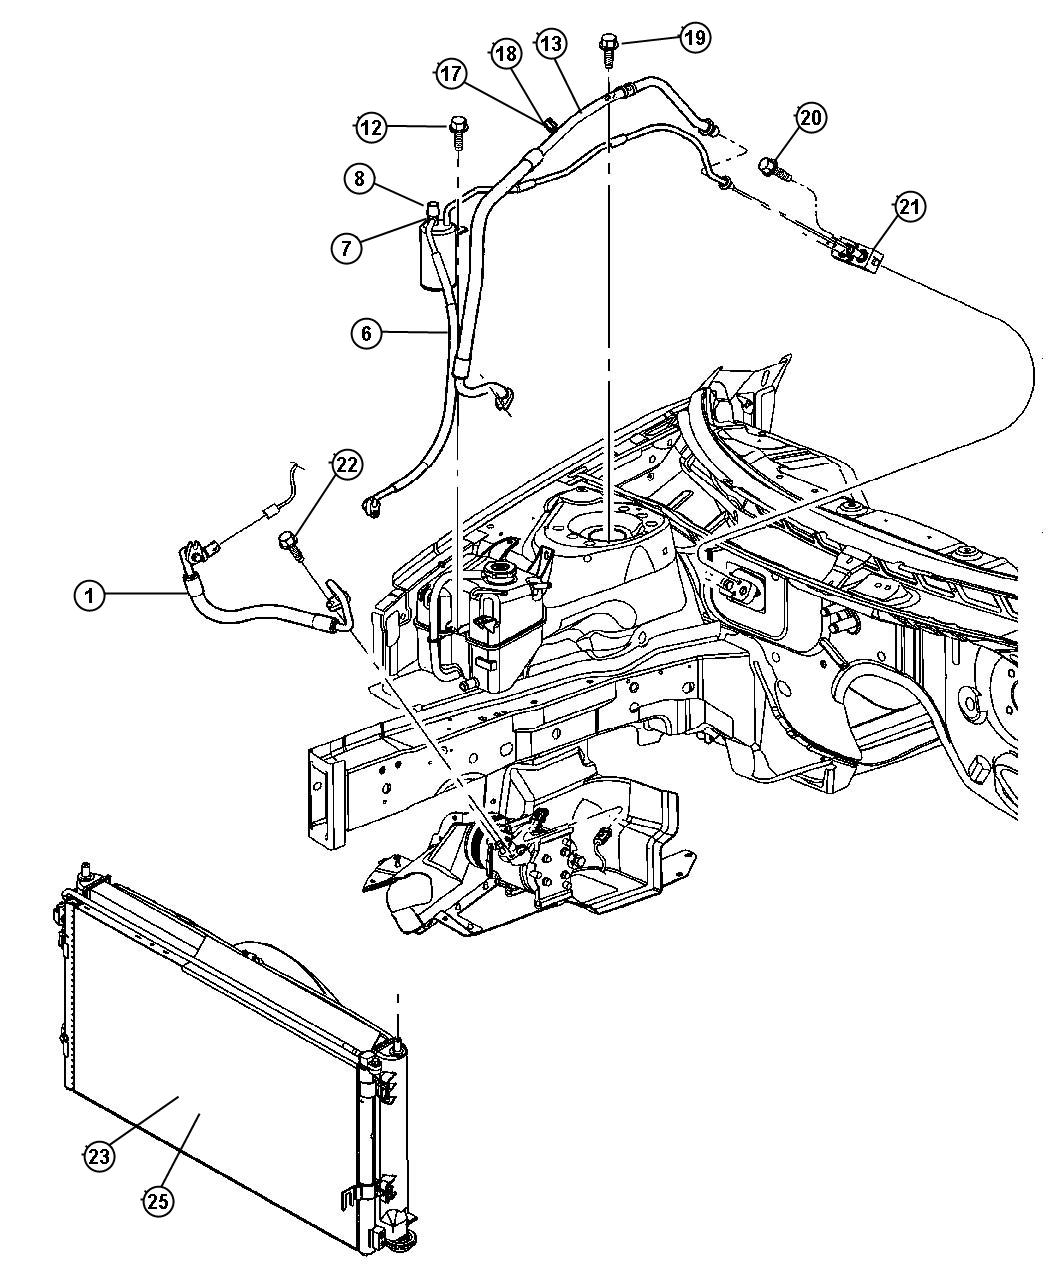 Jeep Liberty Cooler Used For Condenser And Trans